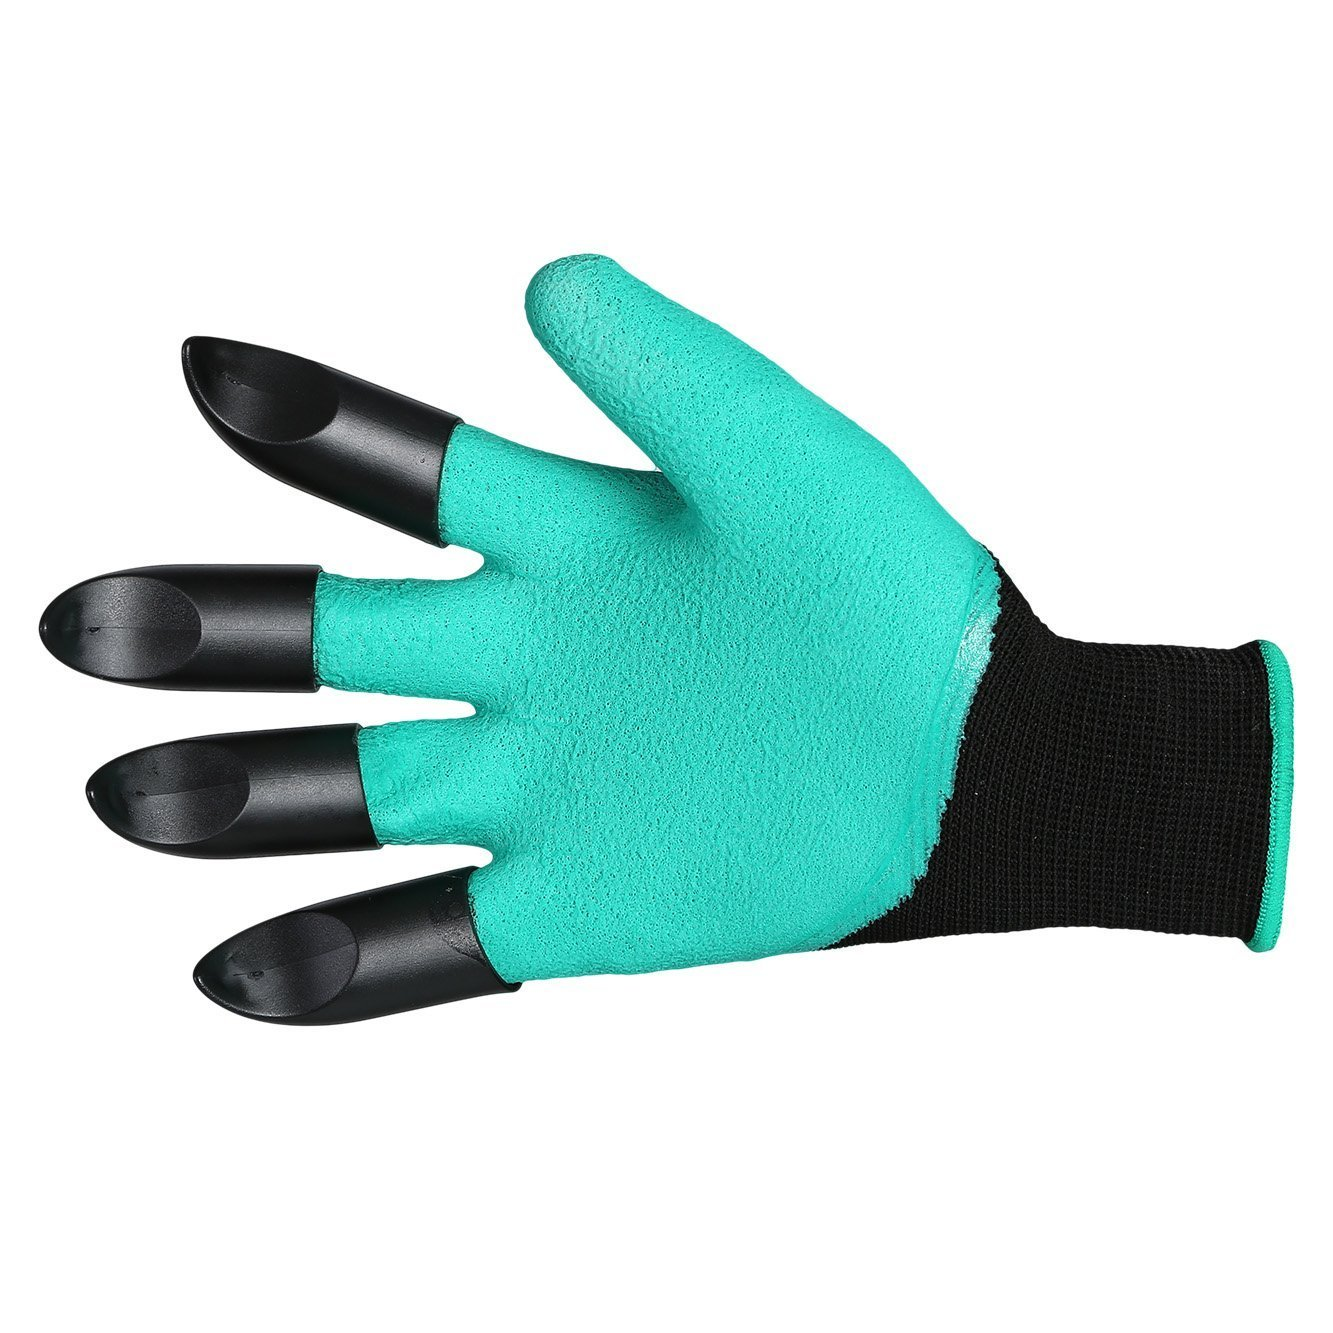 Meanch Garden Gloves with Fingertips Right Hand Claws Quick & Easy to Dig and Plant ¨C Great for Digging Weeding Seeding poking